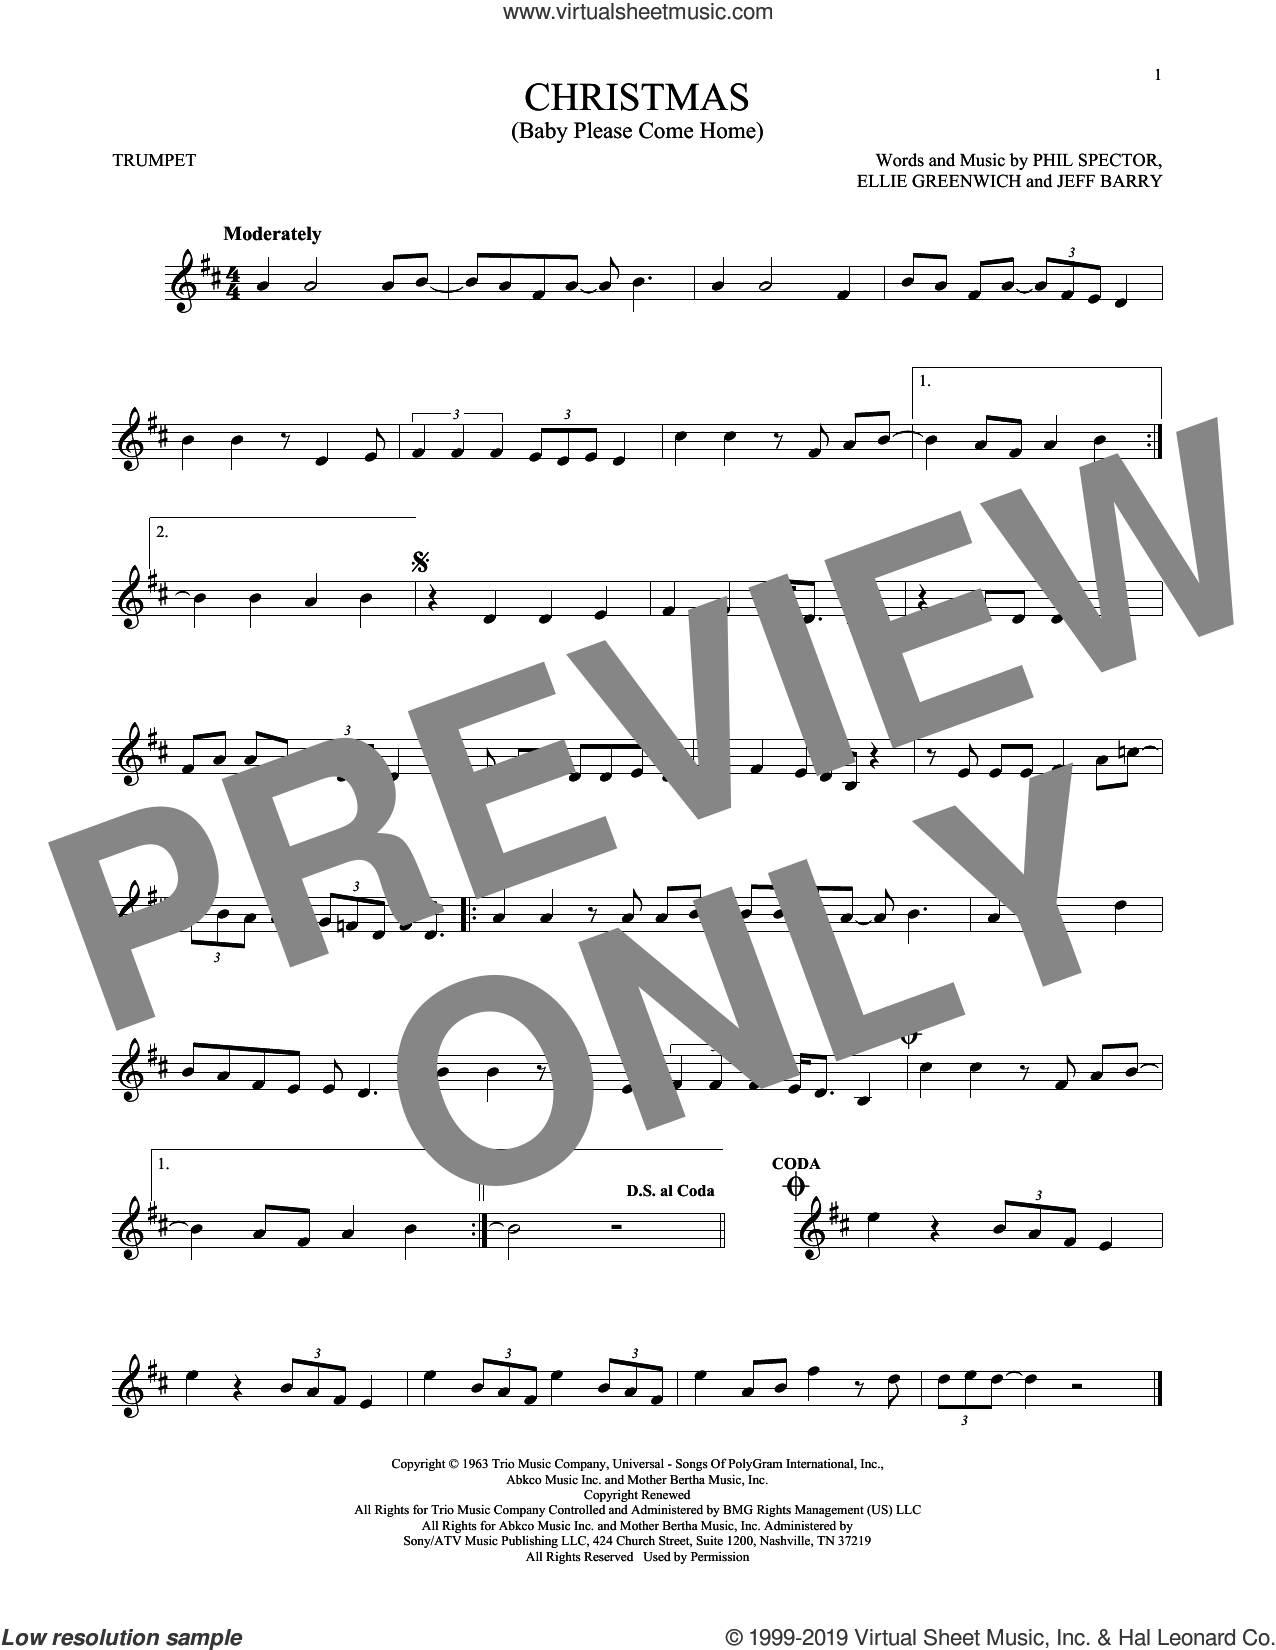 Christmas (Baby Please Come Home) sheet music for trumpet solo by Mariah Carey, Ellie Greenwich, Jeff Barry and Phil Spector, intermediate skill level